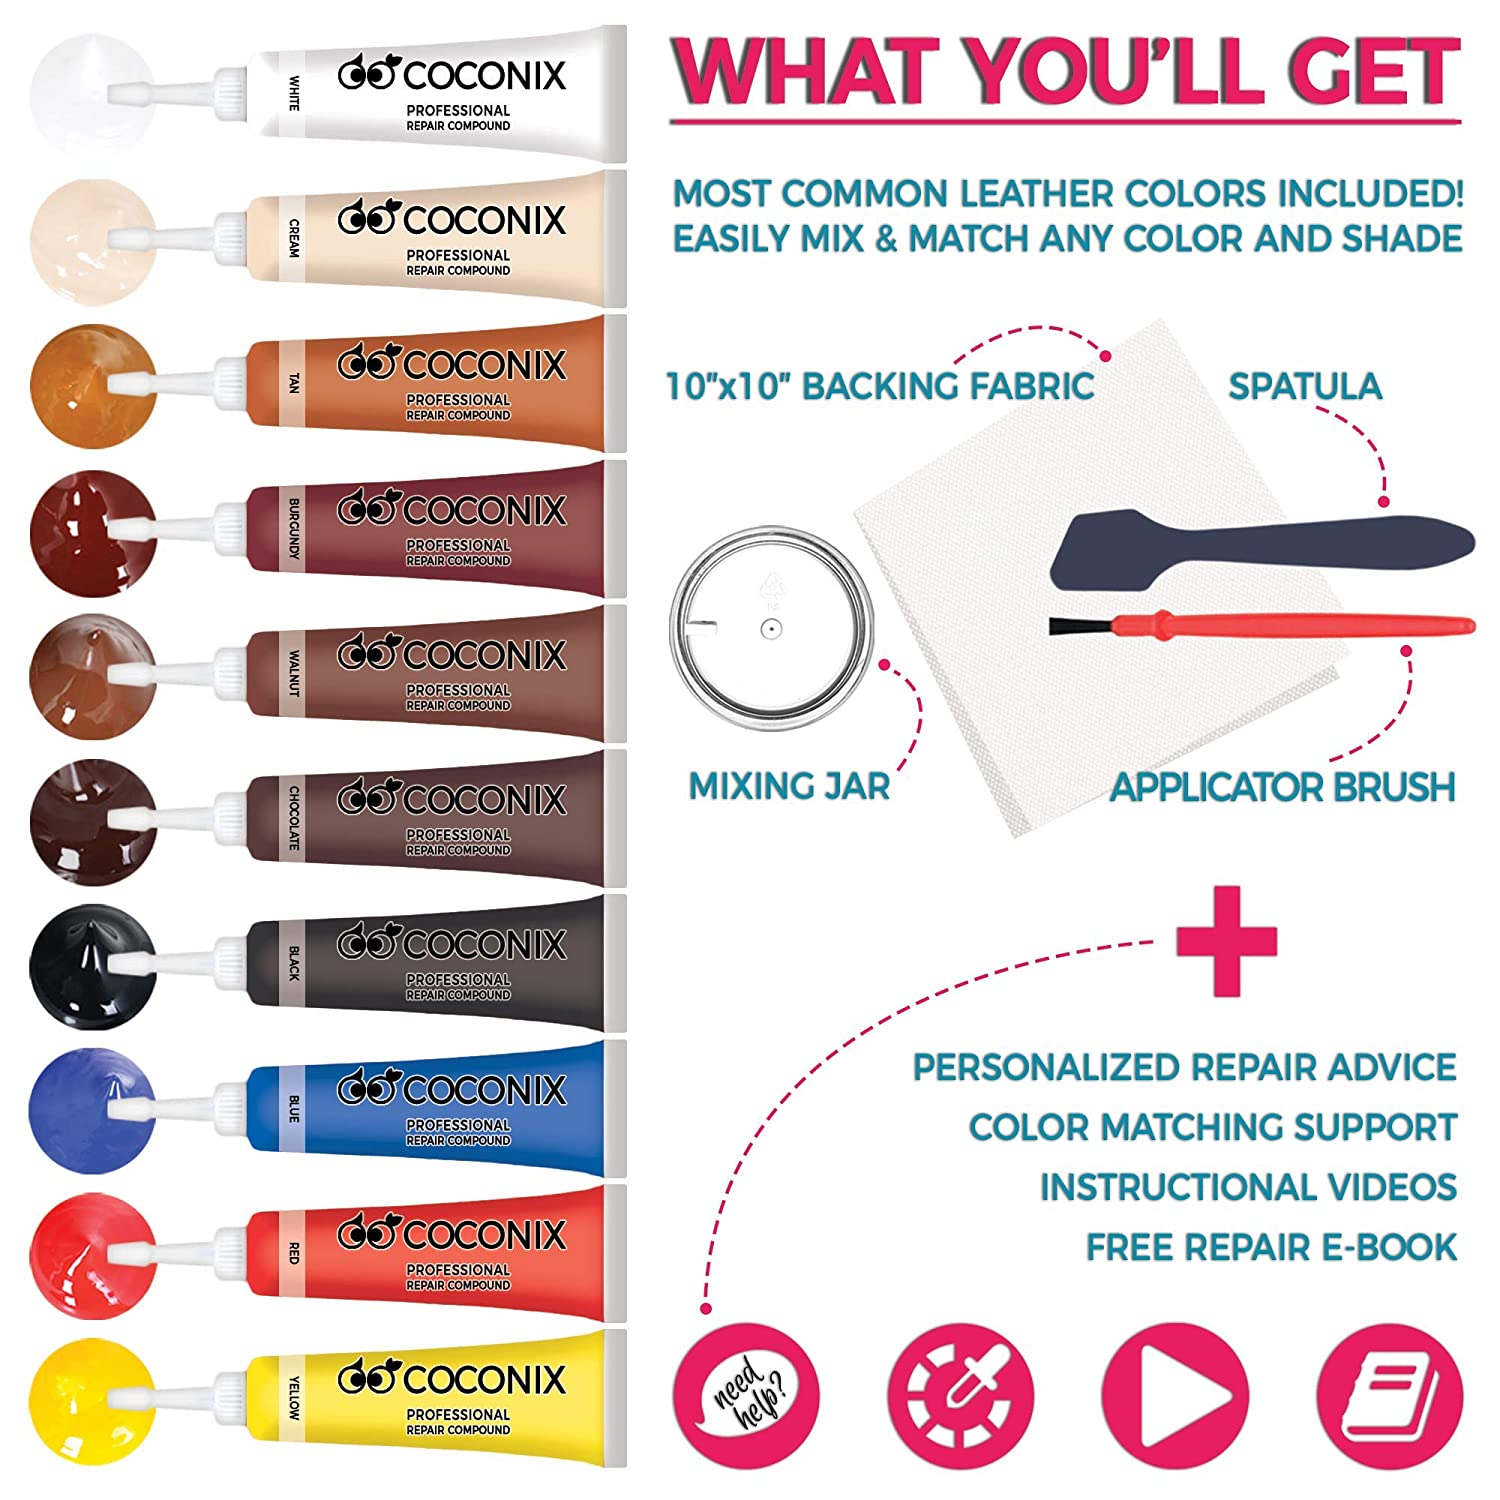 Coconix Vinyl and Leather Repair Kit - Restorer of Your Furniture, Jacket, Sofa, Boat or Car Seat, Super Easy Instructions to Match Any Color, Restore ...